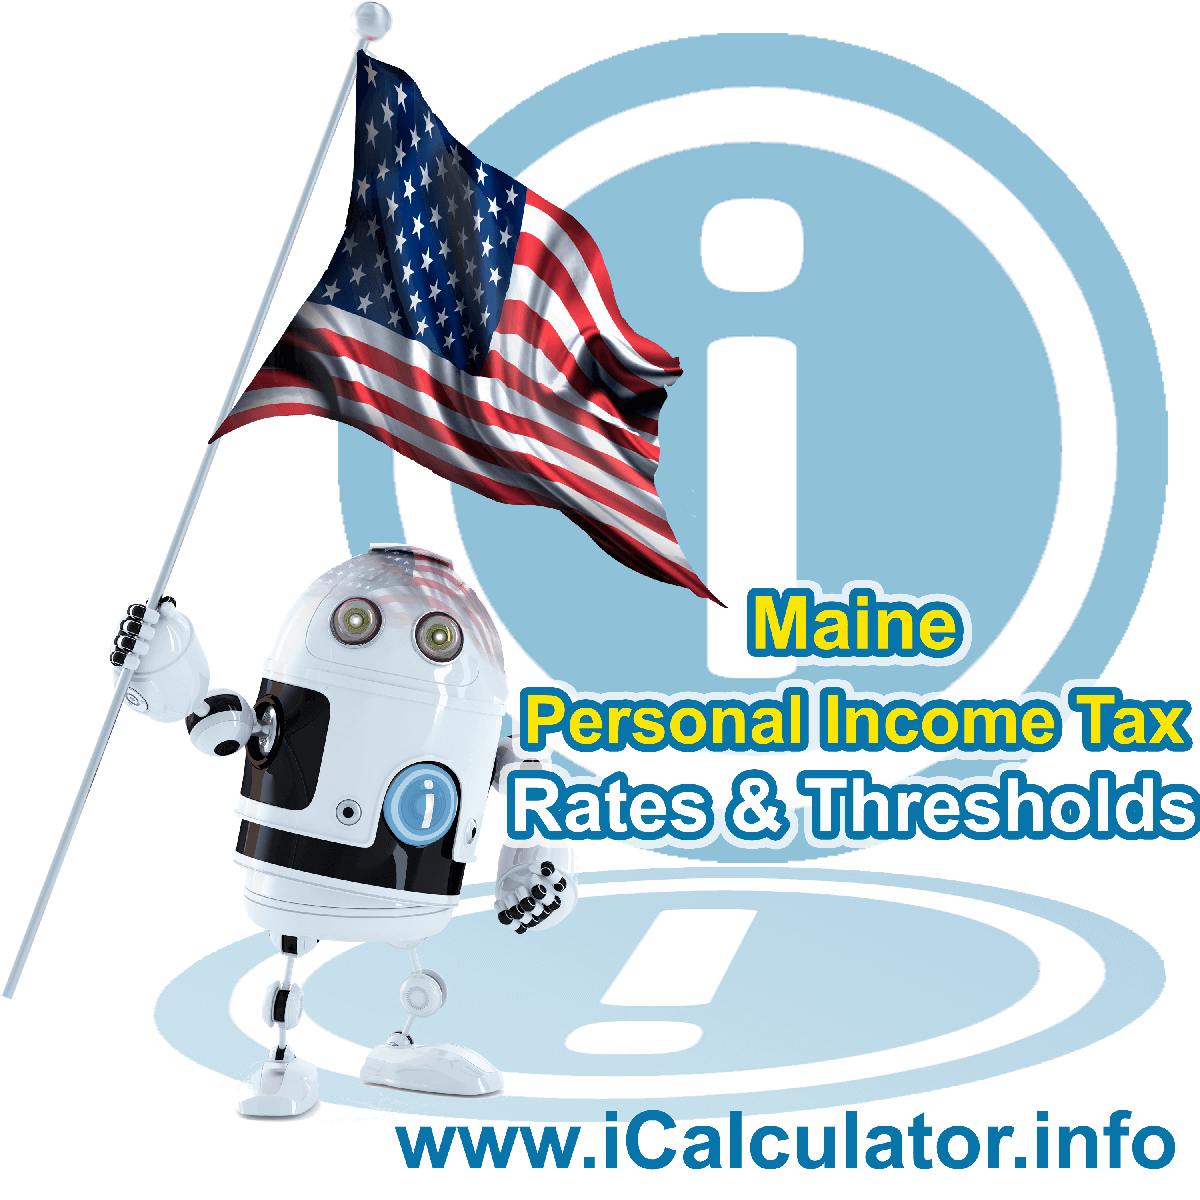 Maine State Tax Tables 2014. This image displays details of the Maine State Tax Tables for the 2014 tax return year which is provided in support of the 2014 US Tax Calculator